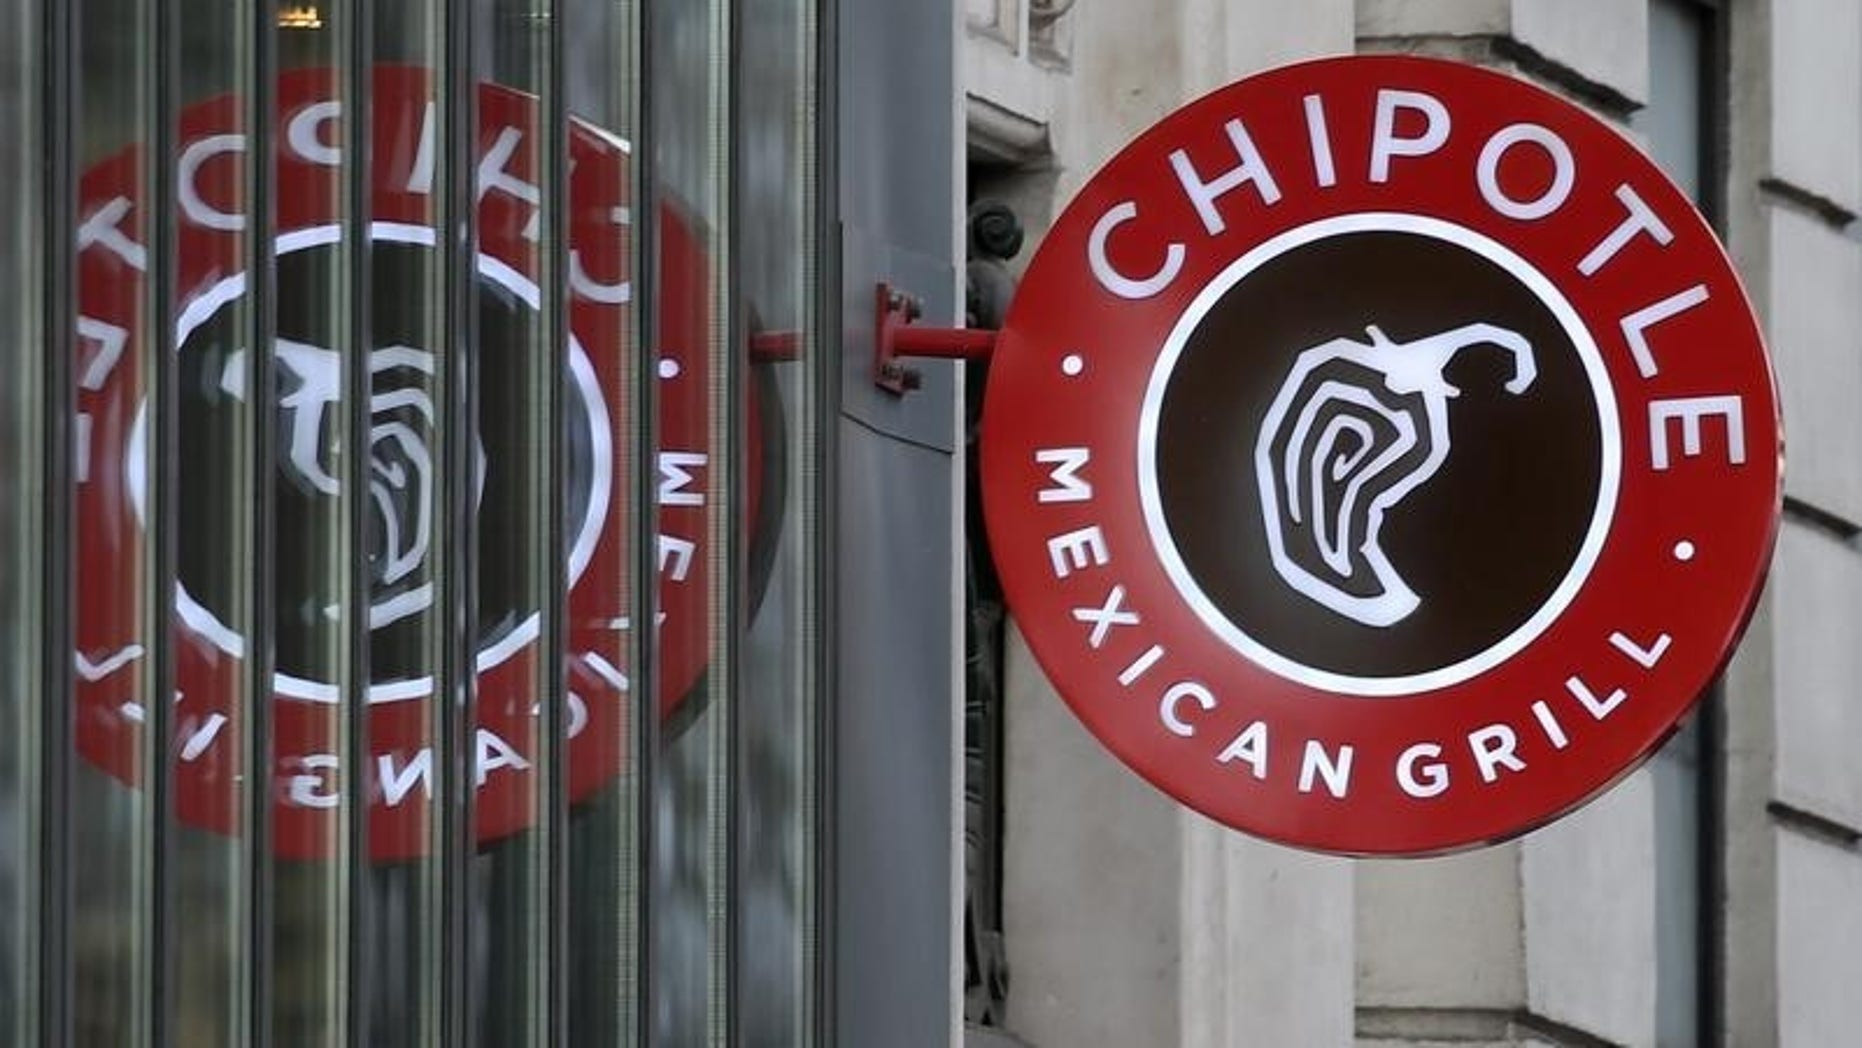 The logo of Chipotle Mexican Grill is seen at a restaurant in Paris